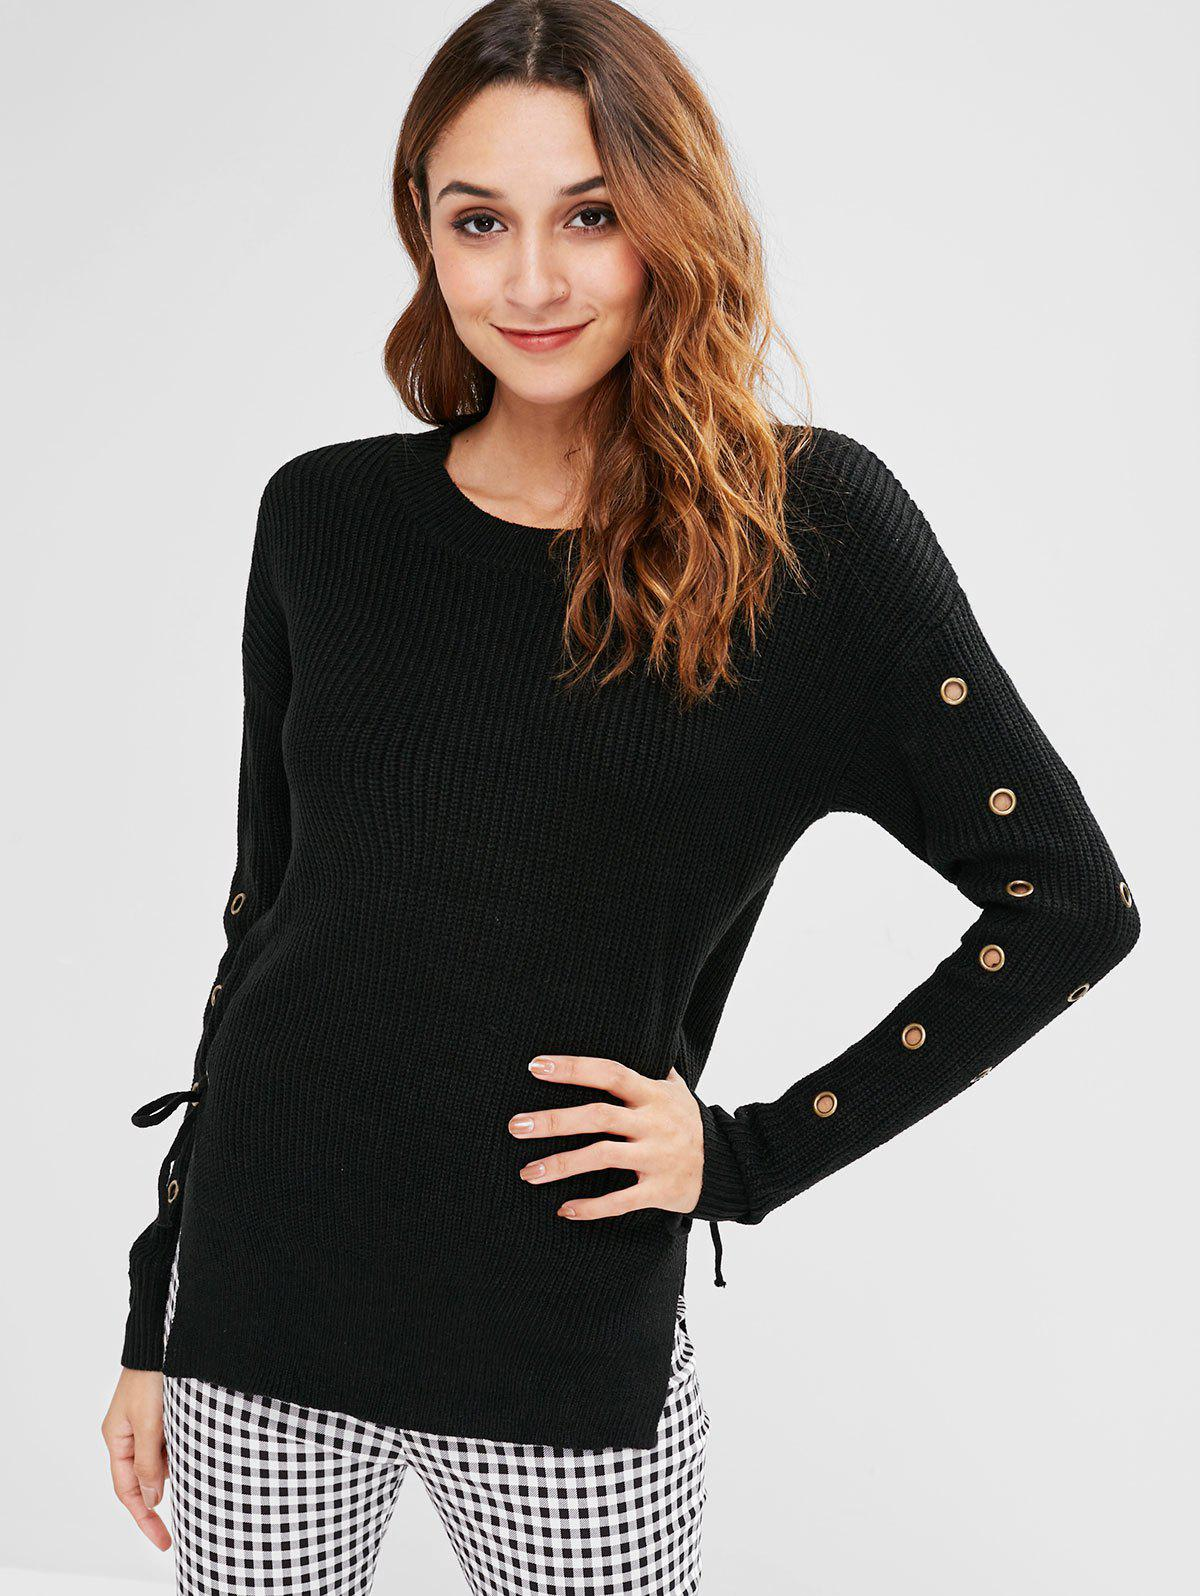 Tie Side Slit Hole Sleeves Ribbed Sweater 282235801